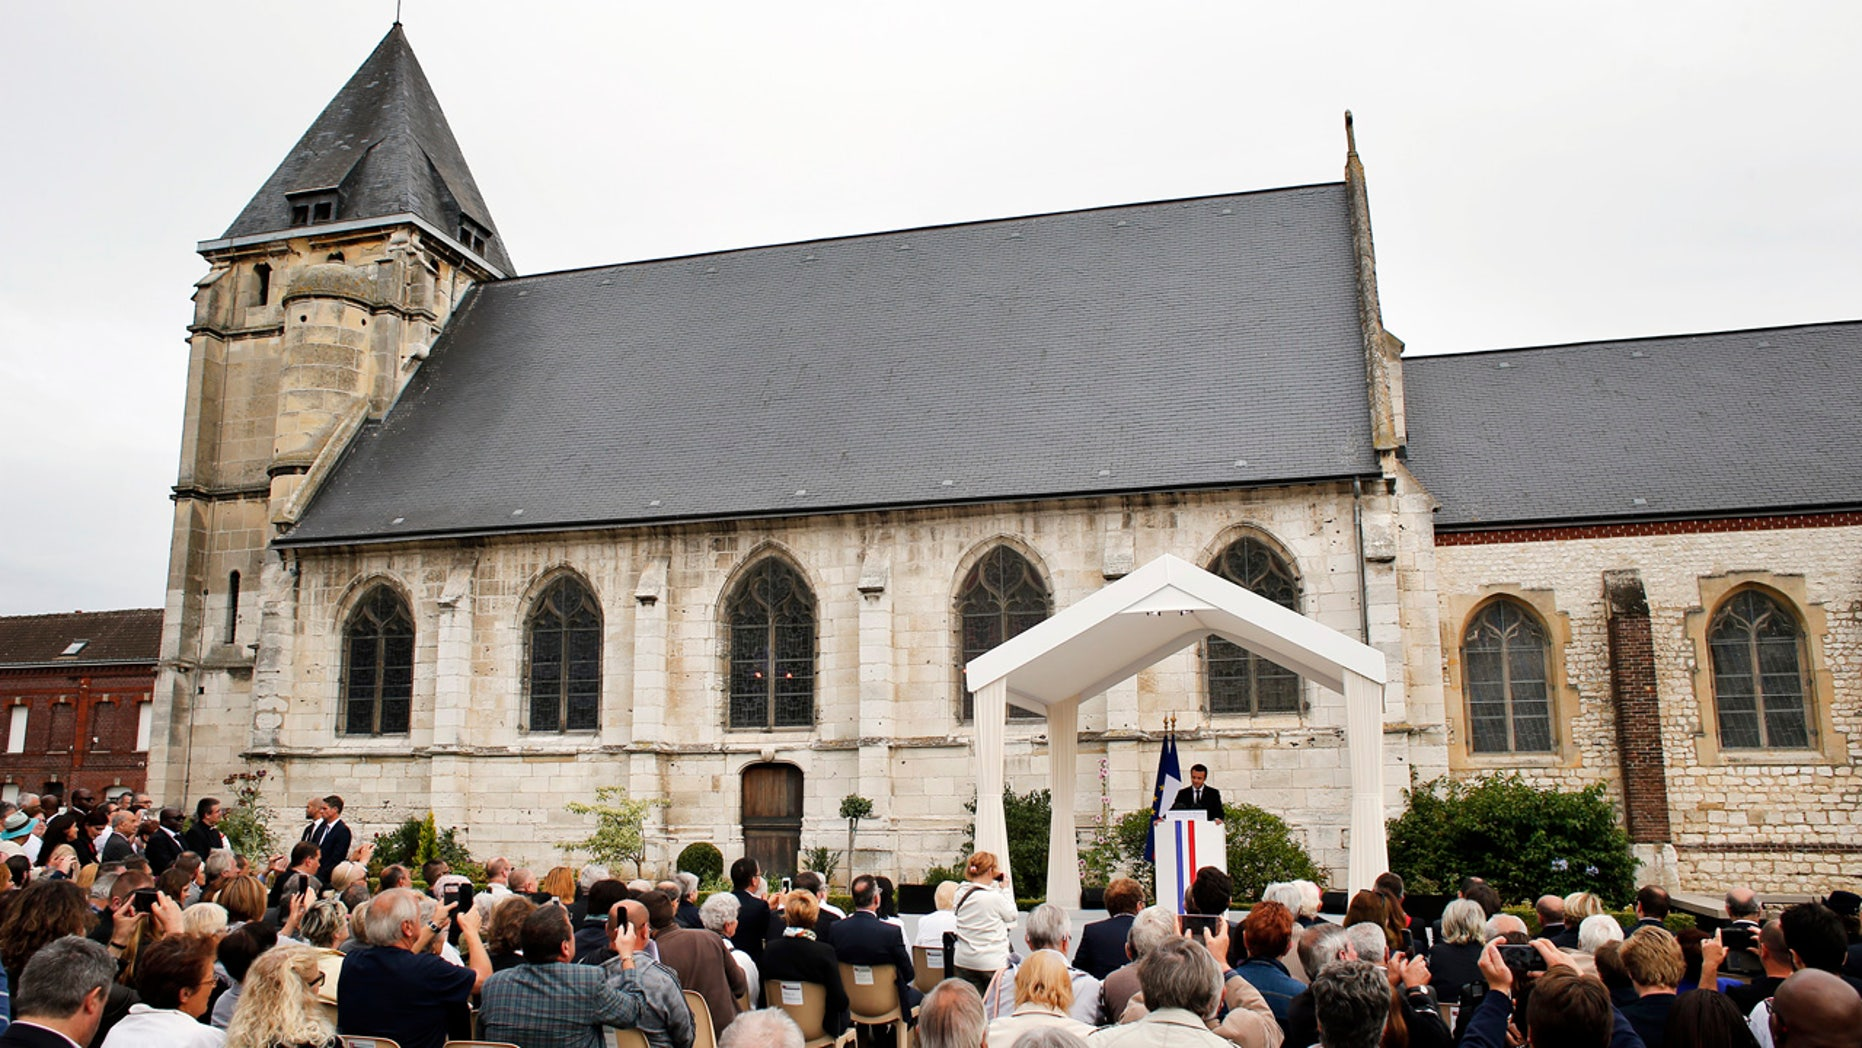 France's President Emmanuel Macron delivers a speech during a ceremony marking the first anniversary of the killing of Catholic priest Jacques Hamel by two jihadists at his church.